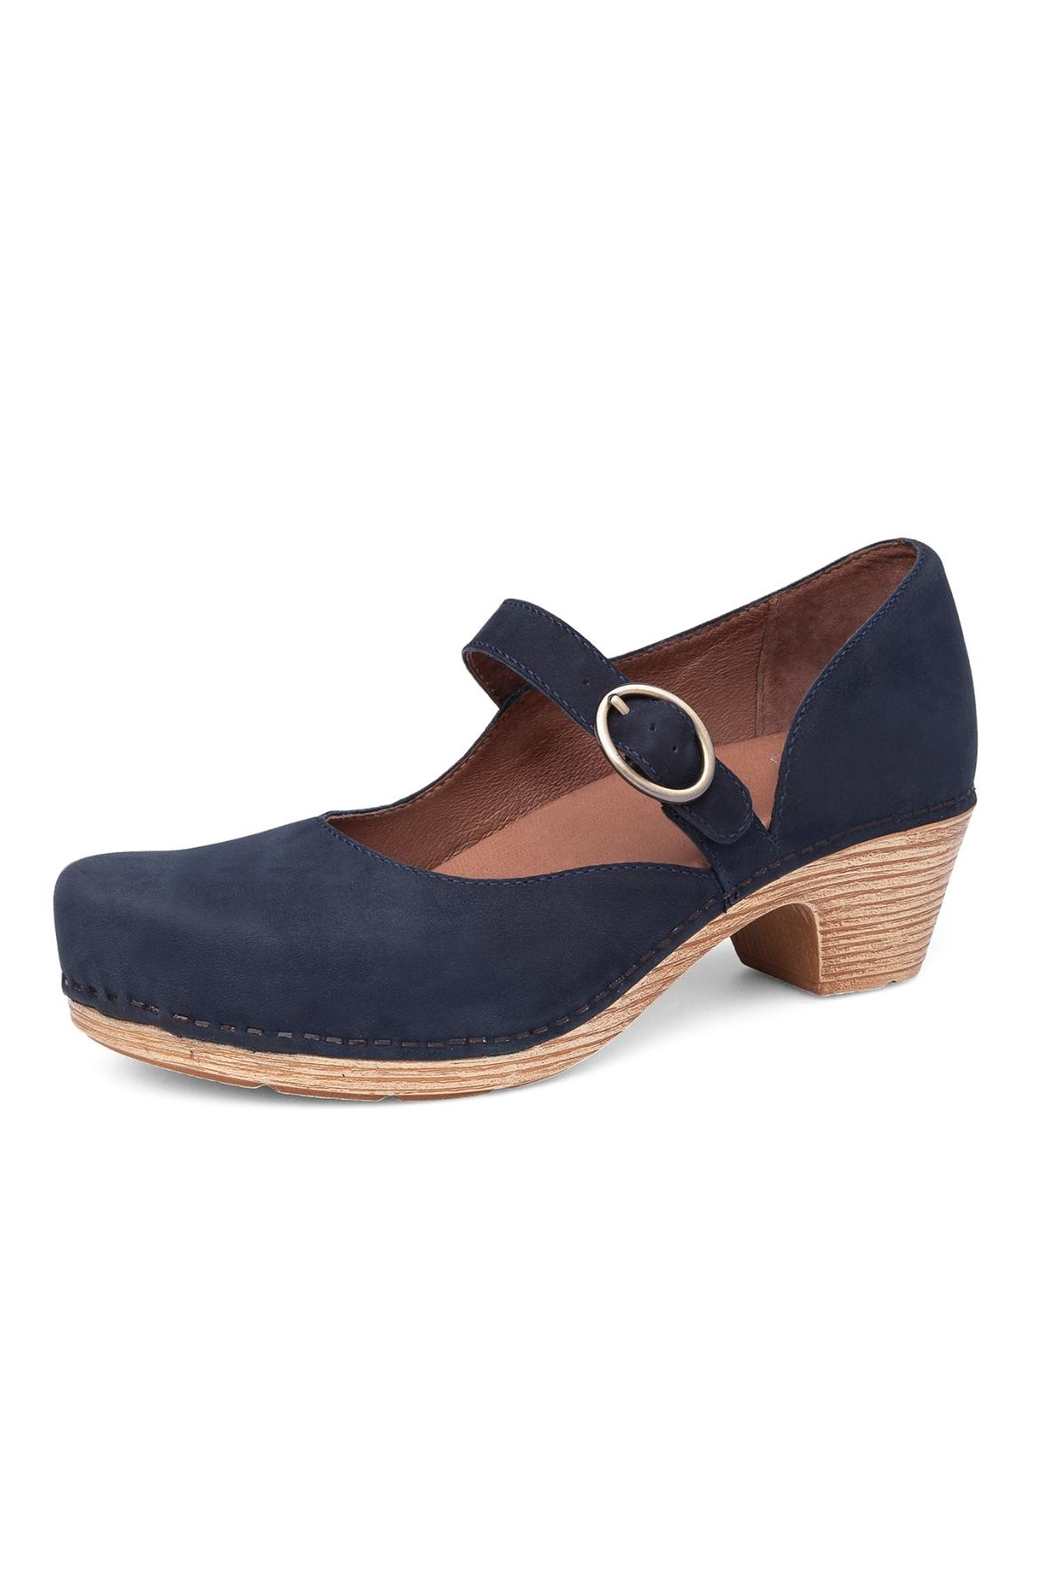 40a302202d Dansko Missy Comfort Maryjane from California by Mattalou Shoe ...